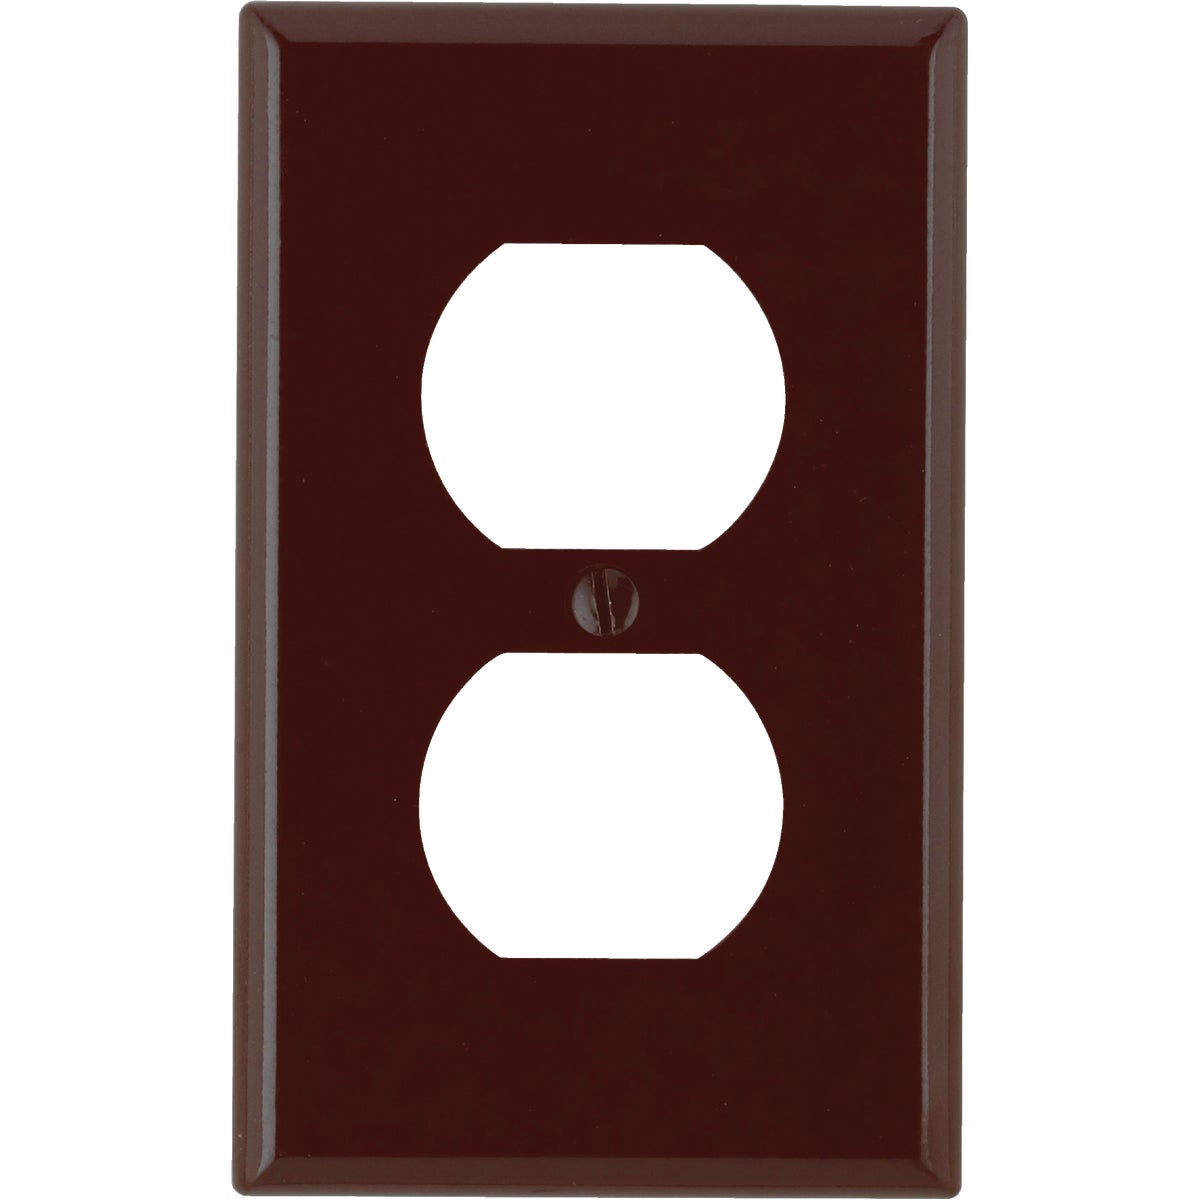 BR OUTLET WALL PLATE - 85003 by Leviton Mfg Co